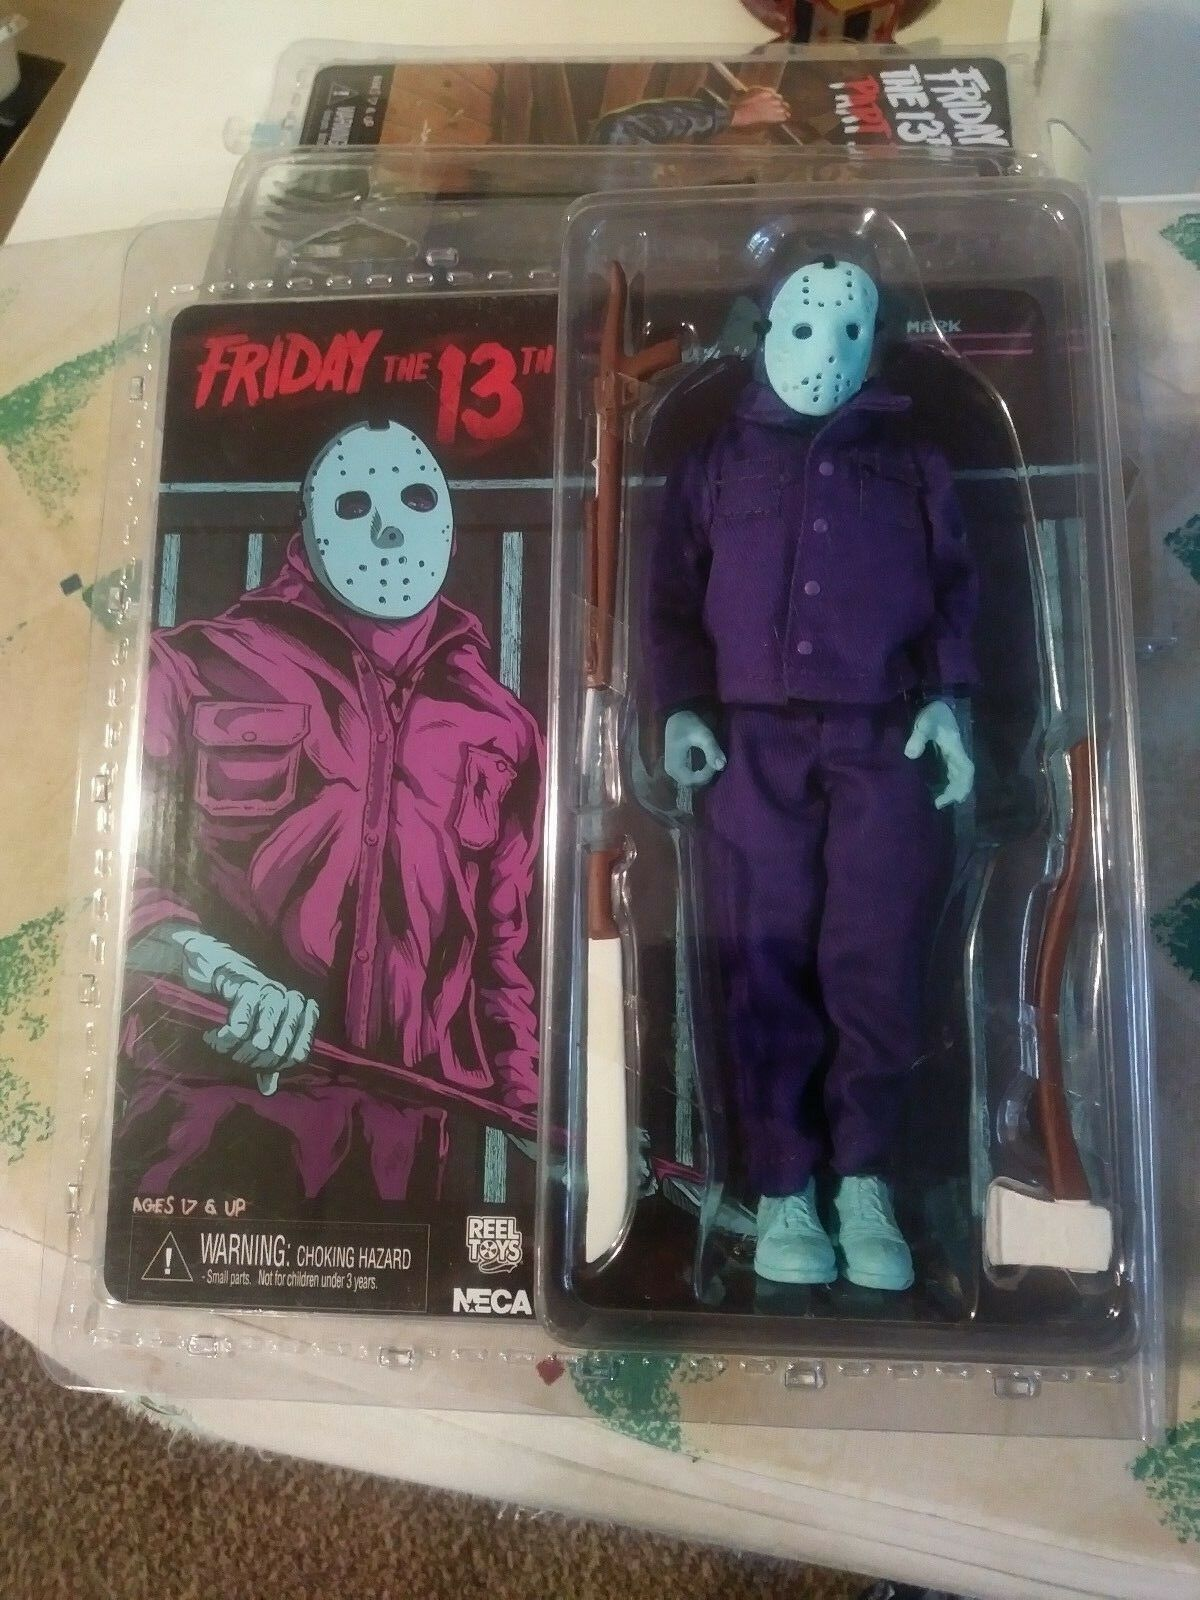 NECA NES JASON VOORHEES FRIDAY THE 13TH FIGURE 8 BIT VIDEO GAME TRU EXCLUSIVE